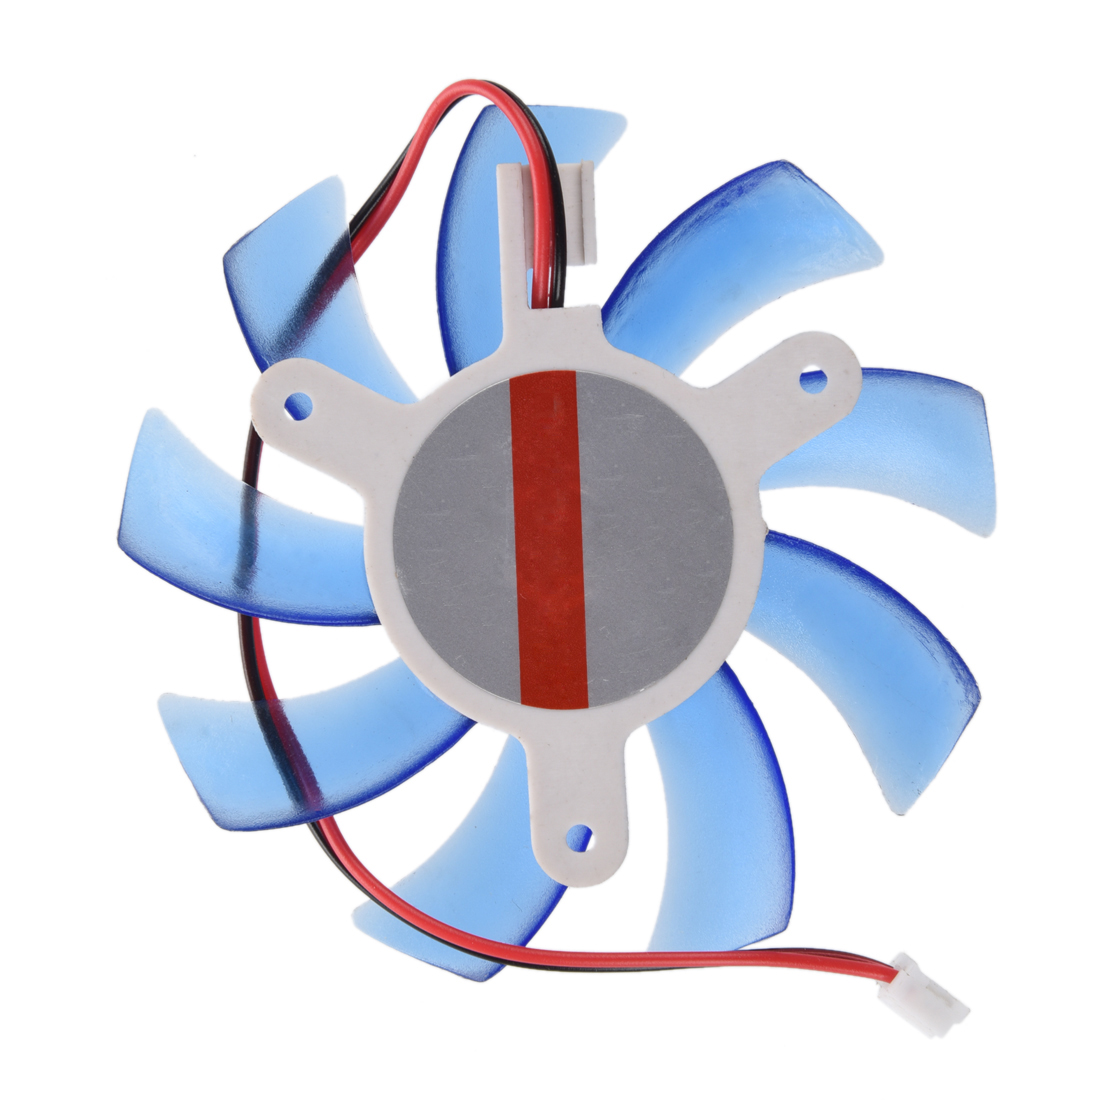 PC VGA Display Video Card Heatsink Cooler Cooling Fan Blue